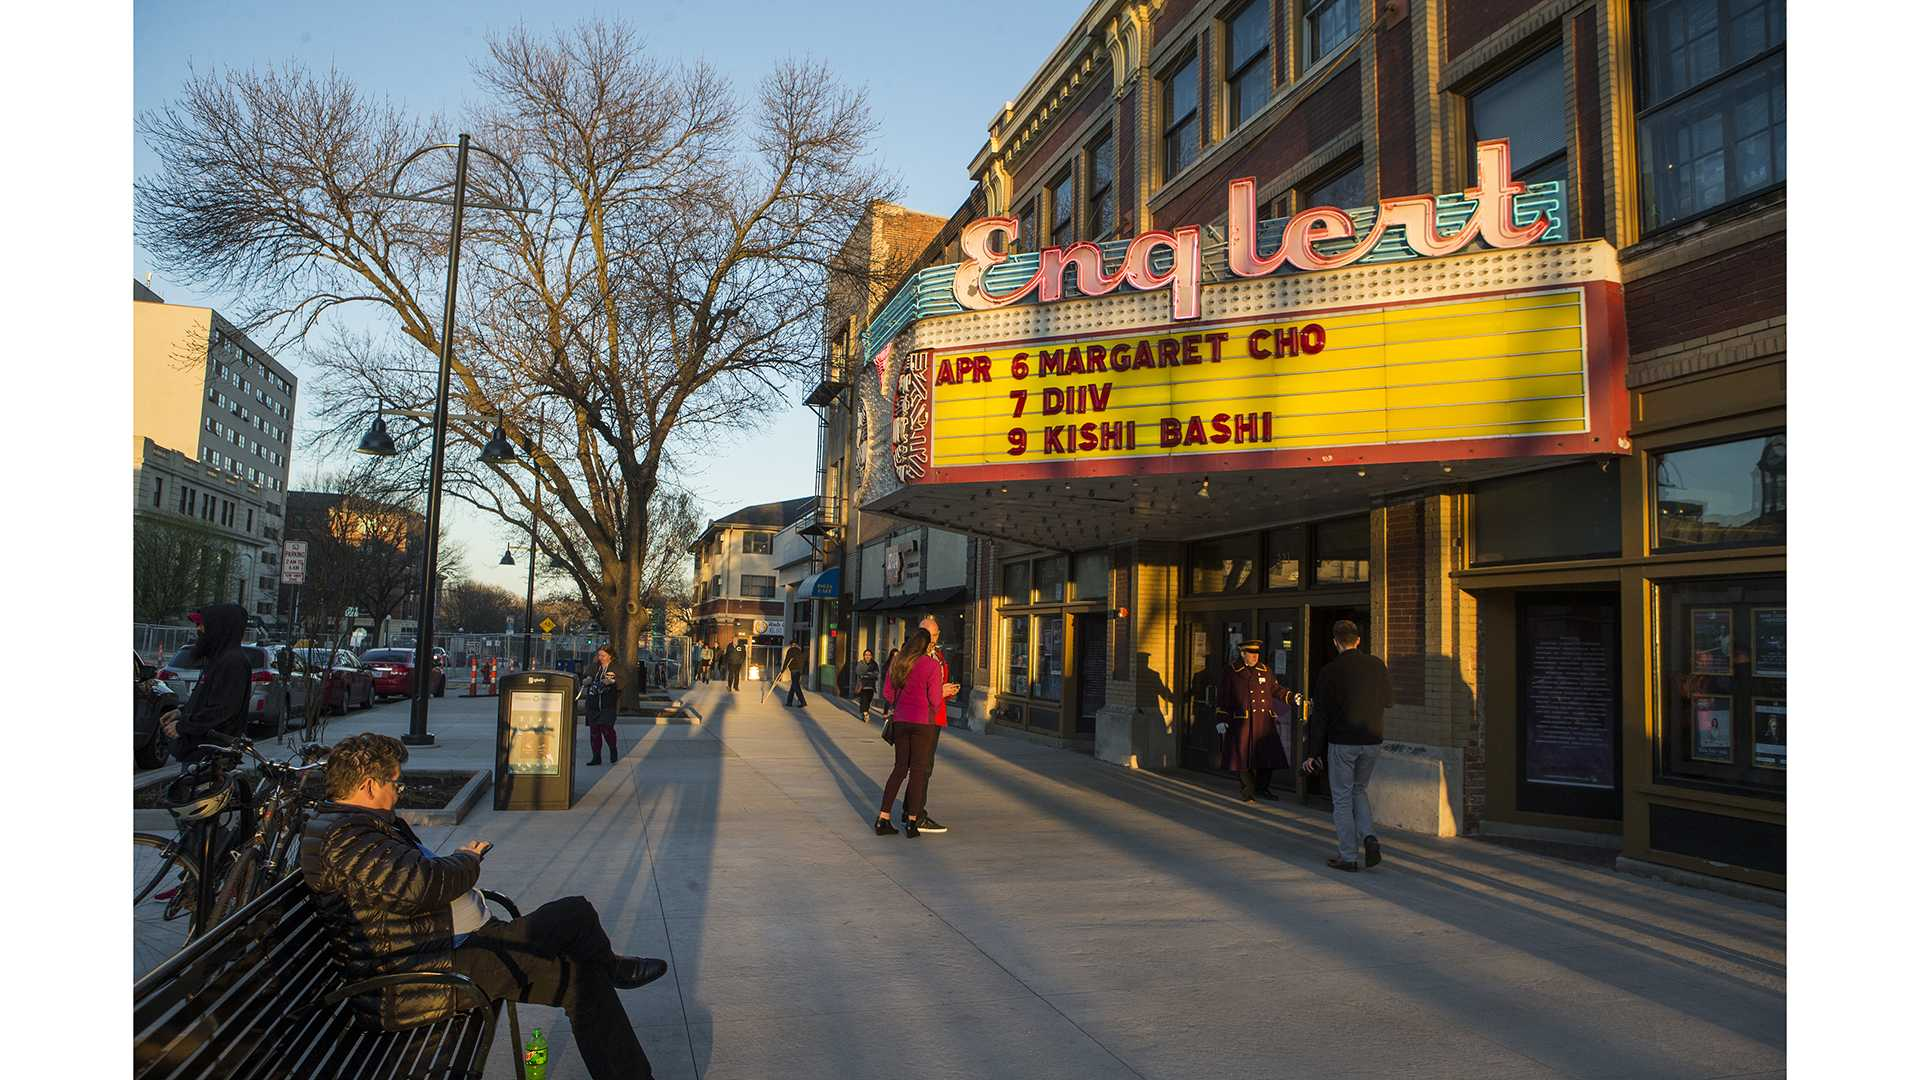 People enter The Englert Theatre for comedian, Margaret Cho's stand-up during Mission Creek Festival on Thursday, April 6, 2017. Cho is best known for her social and political commentary, particularly in support of the LGBT community. (The Daily Iowan/Ben Smith)